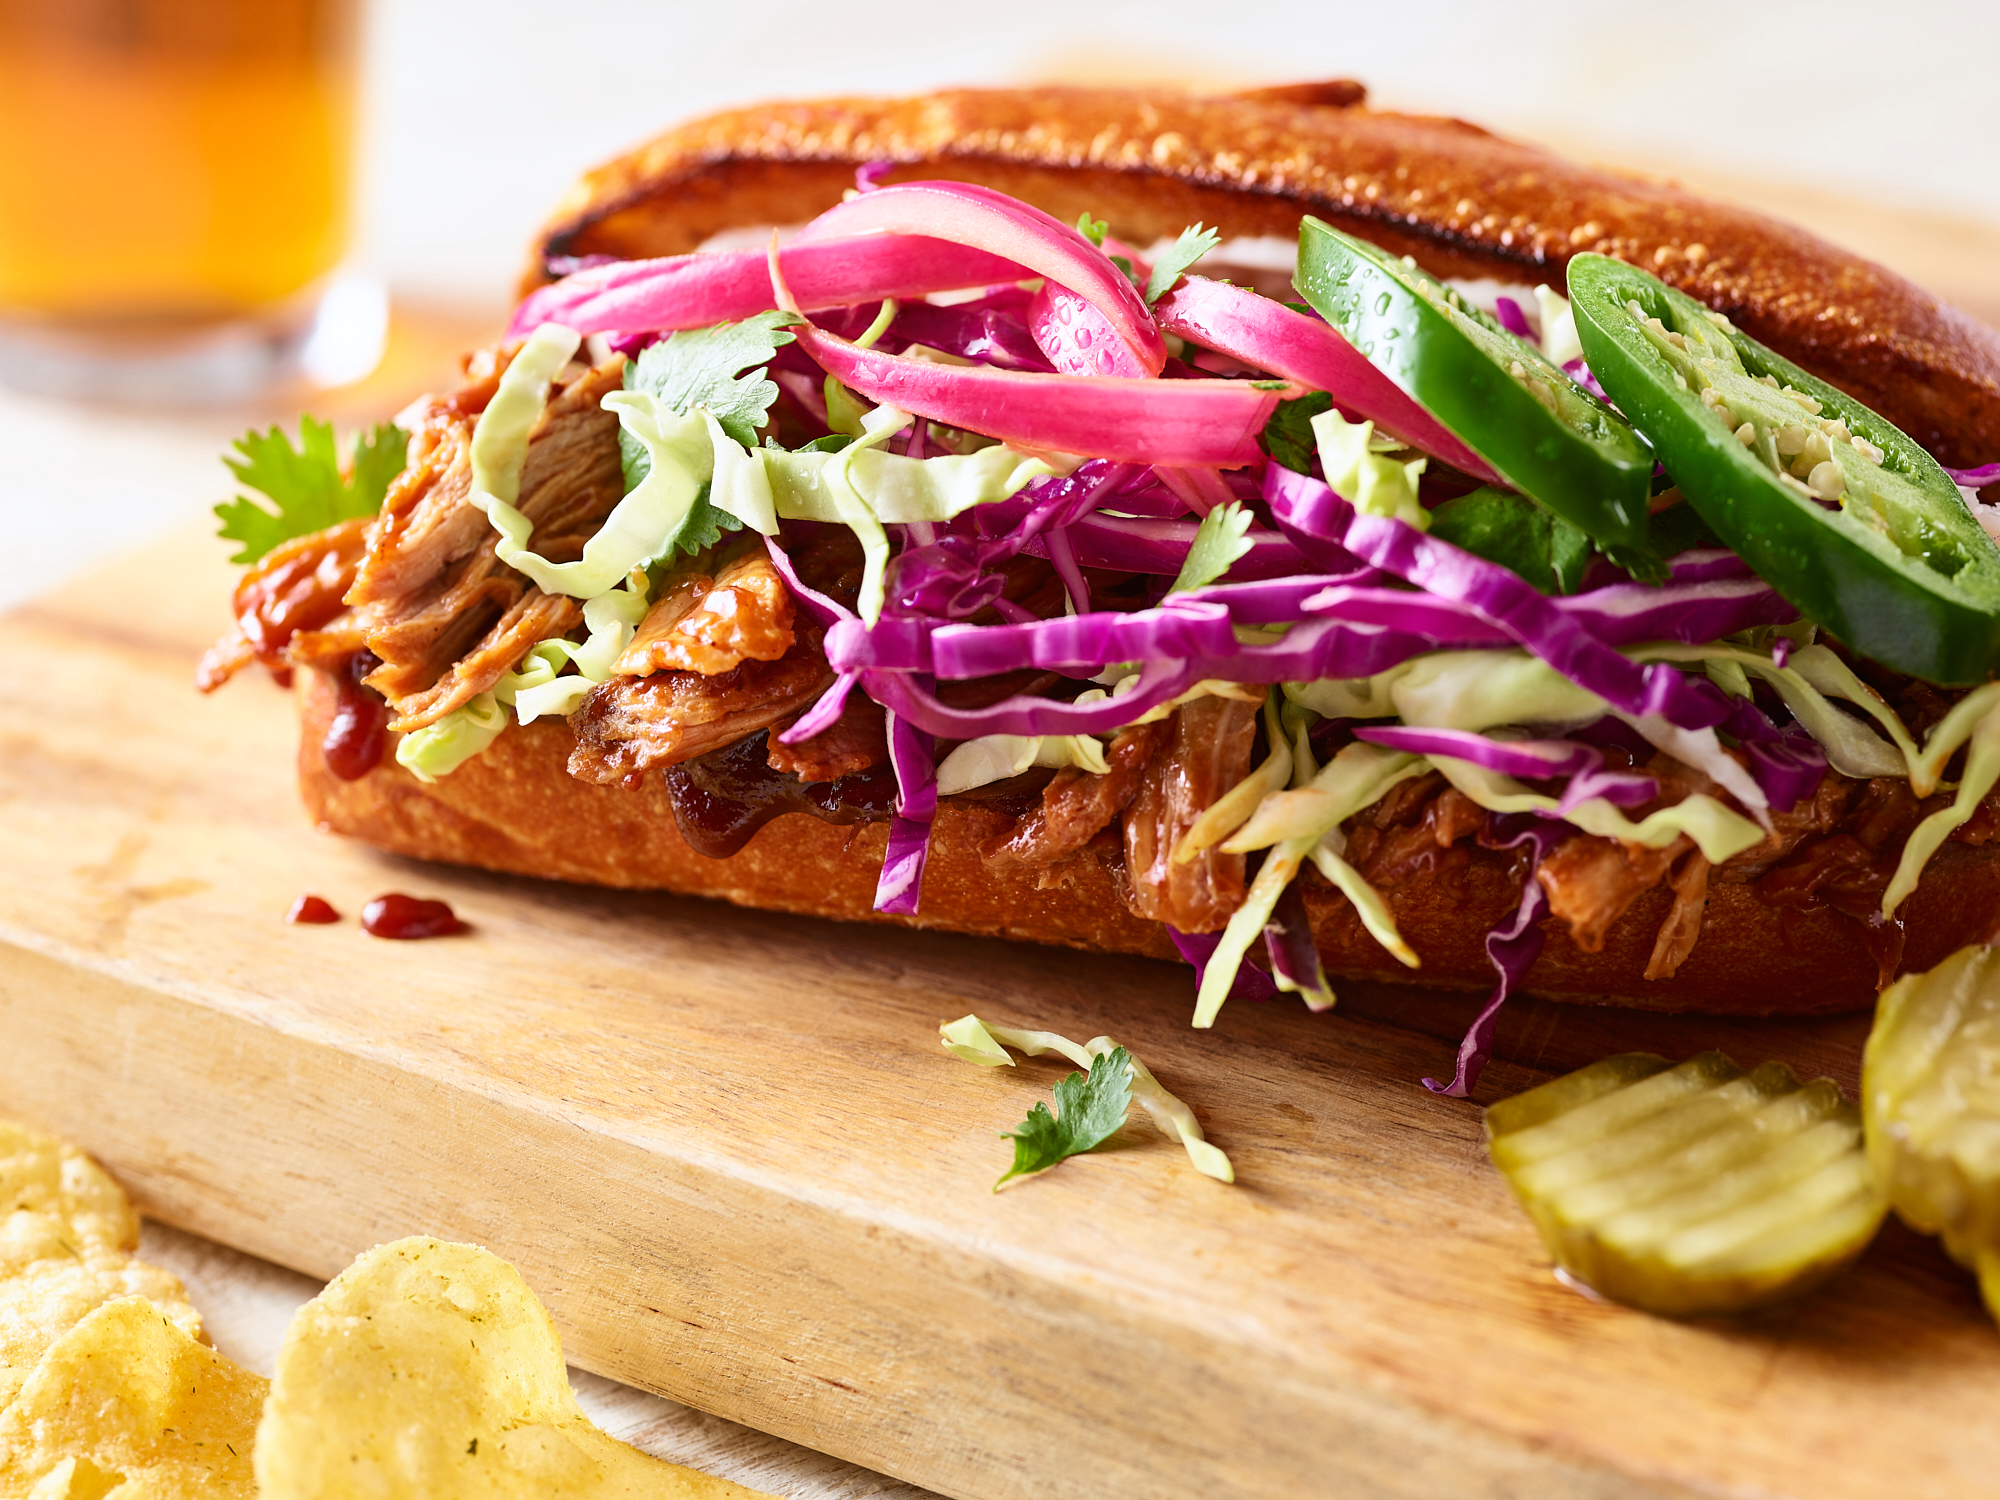 2-Pulled-Pork-Sandwich_0204_070119_R1_V2.jpg